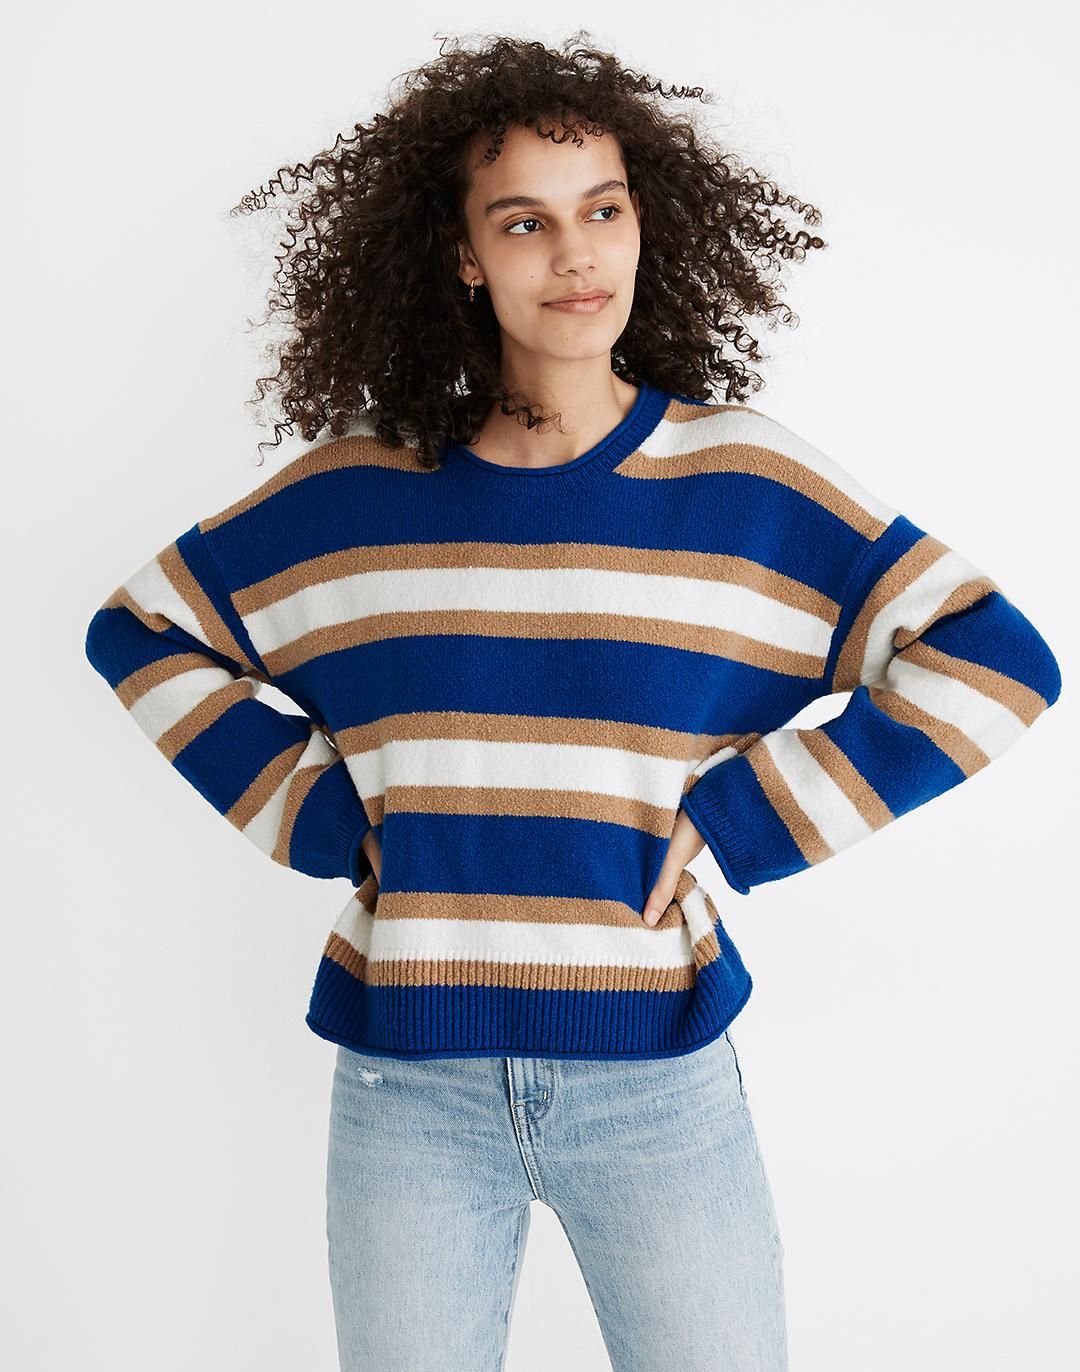 Striped Belmore Pullover Sweater in Coziest Textured Yarn